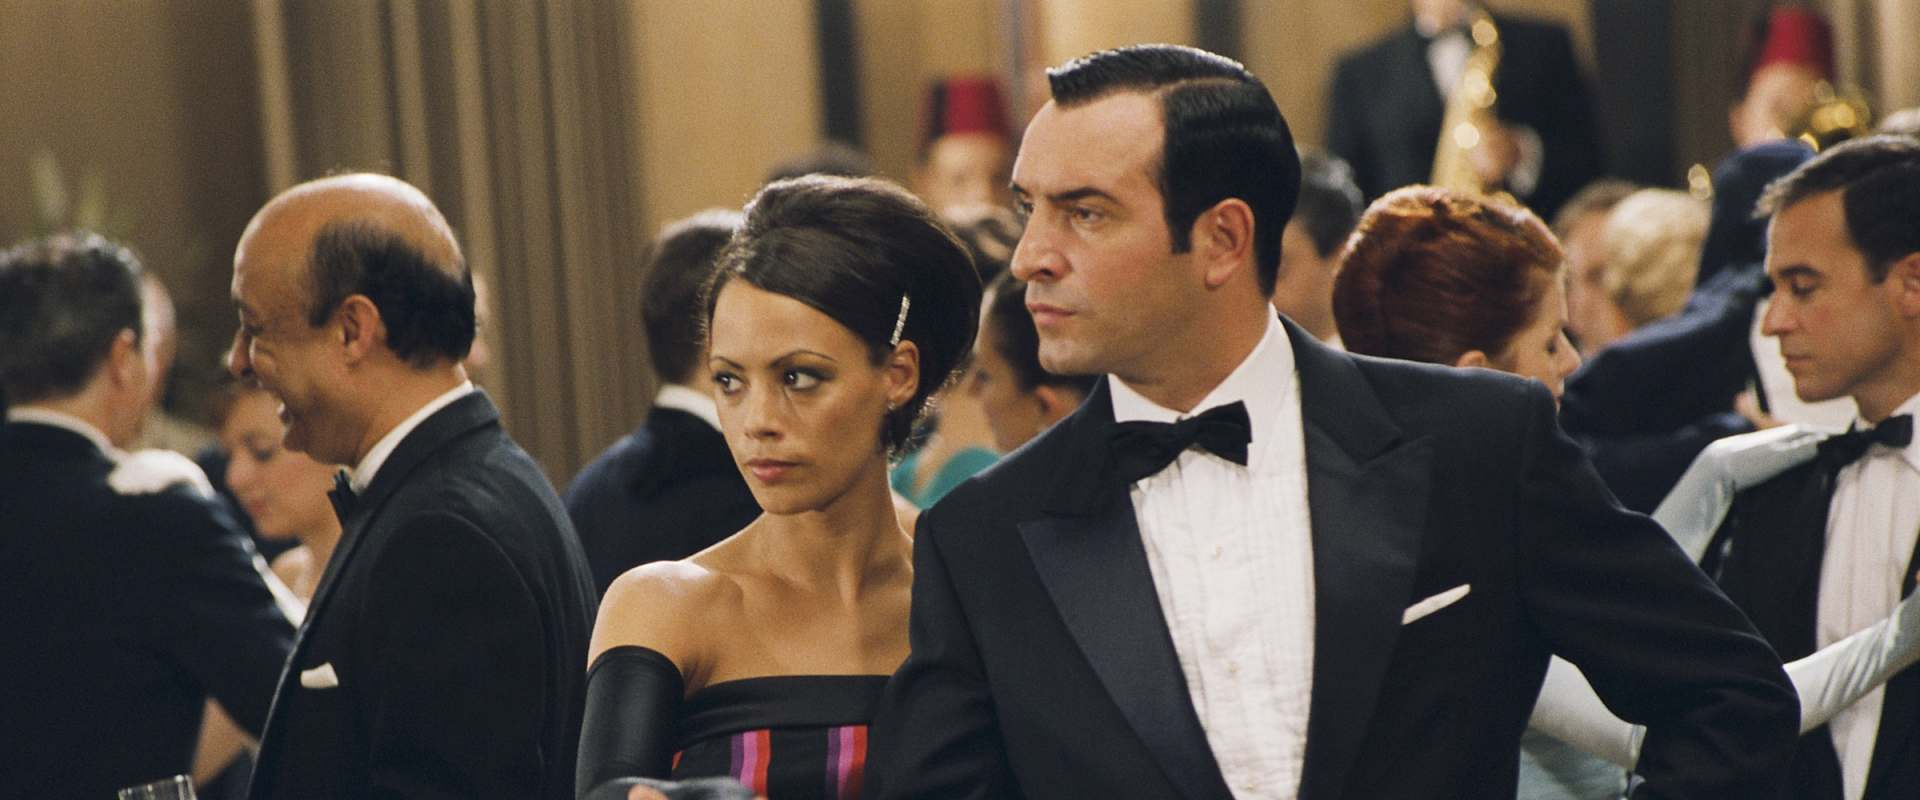 OSS 117: Cairo, Nest of Spies background 1